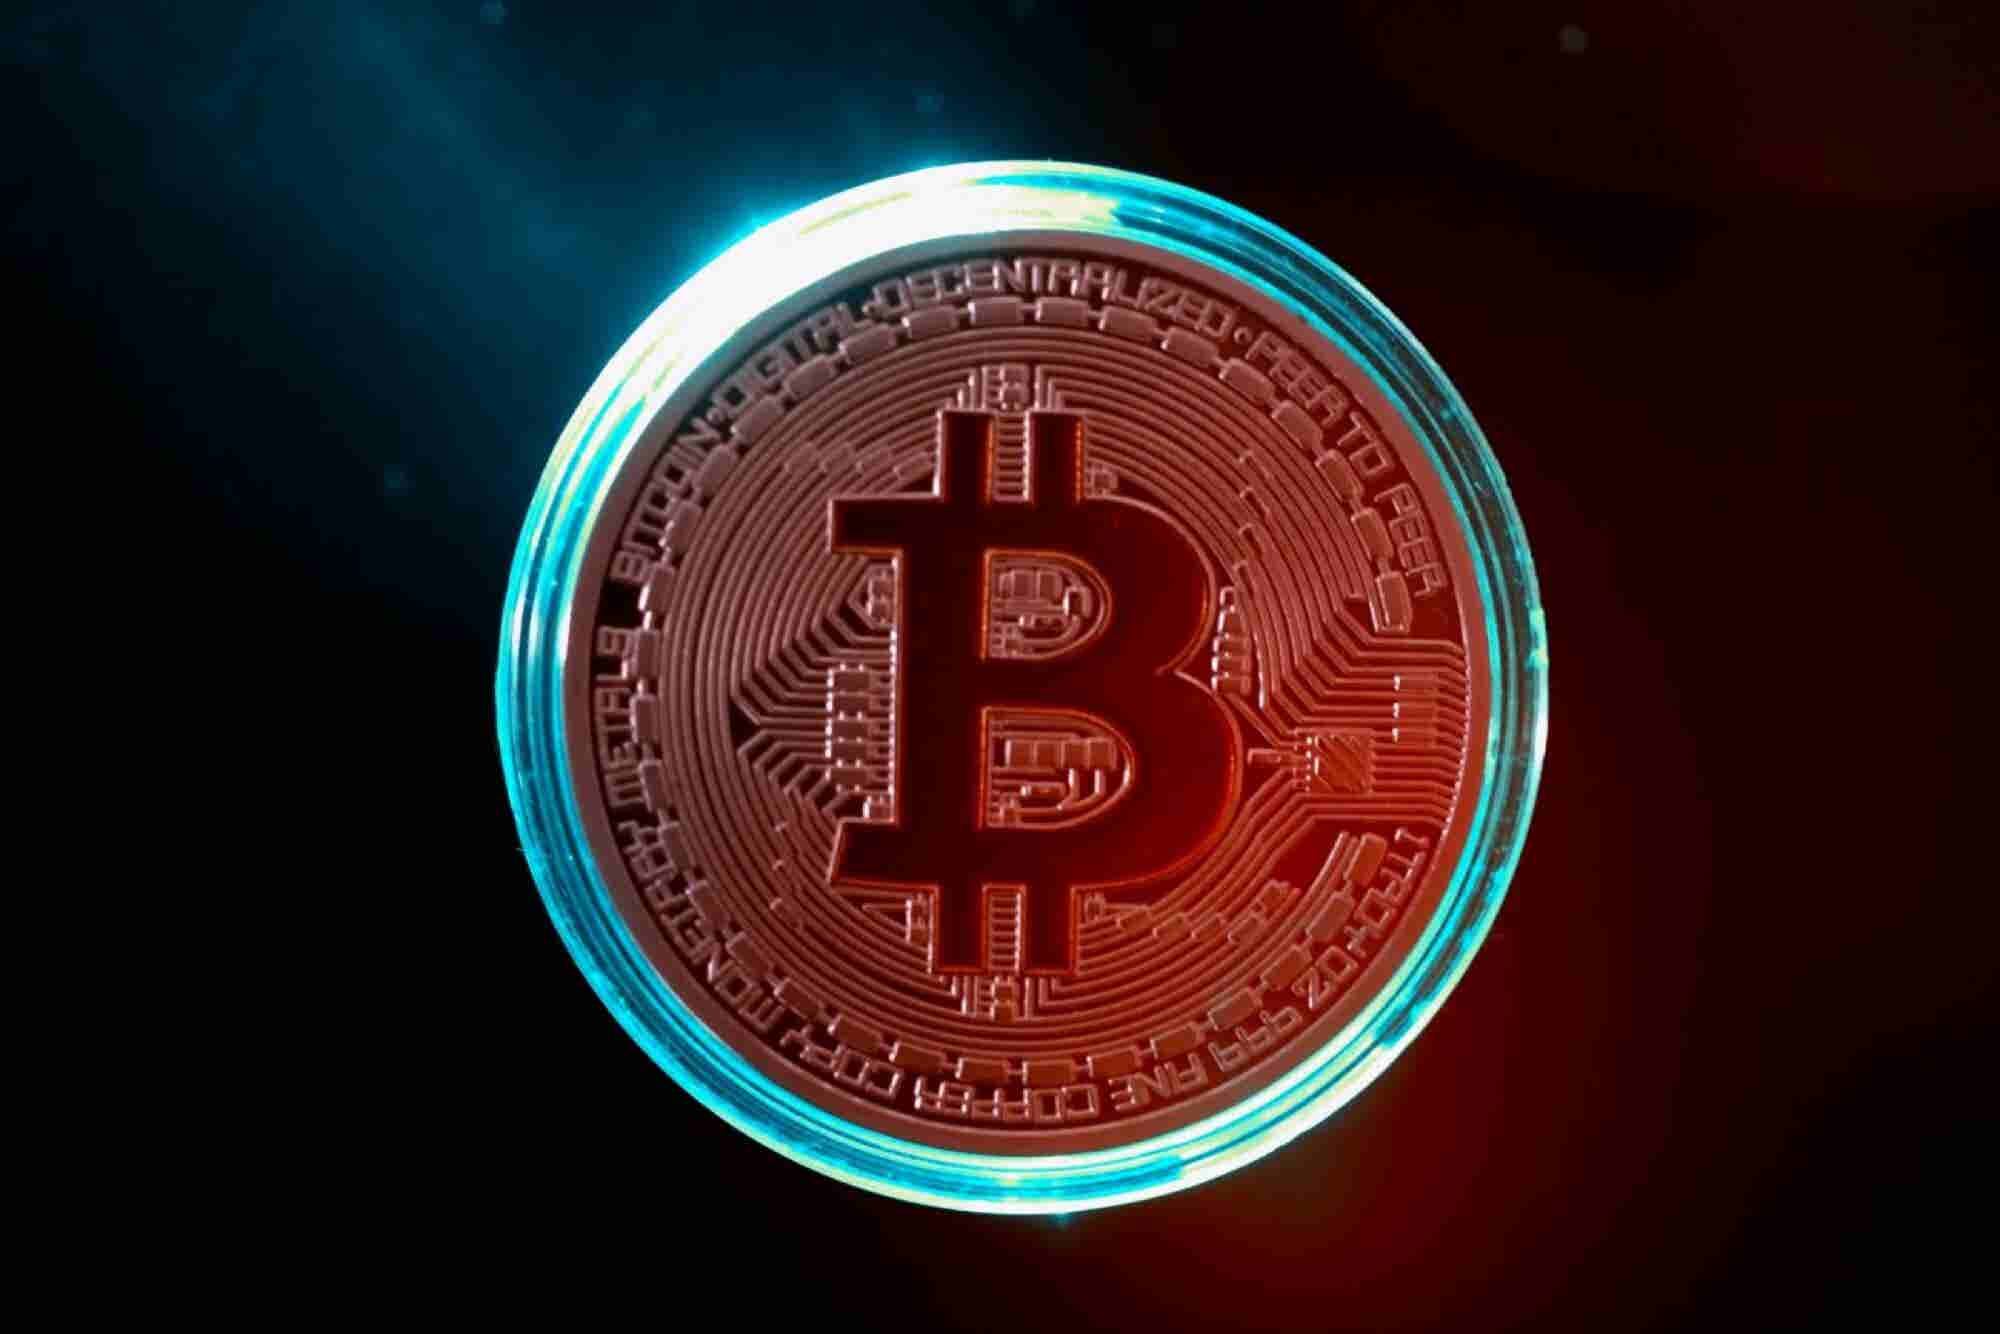 Watch Out for These Cryptocurrency Scams